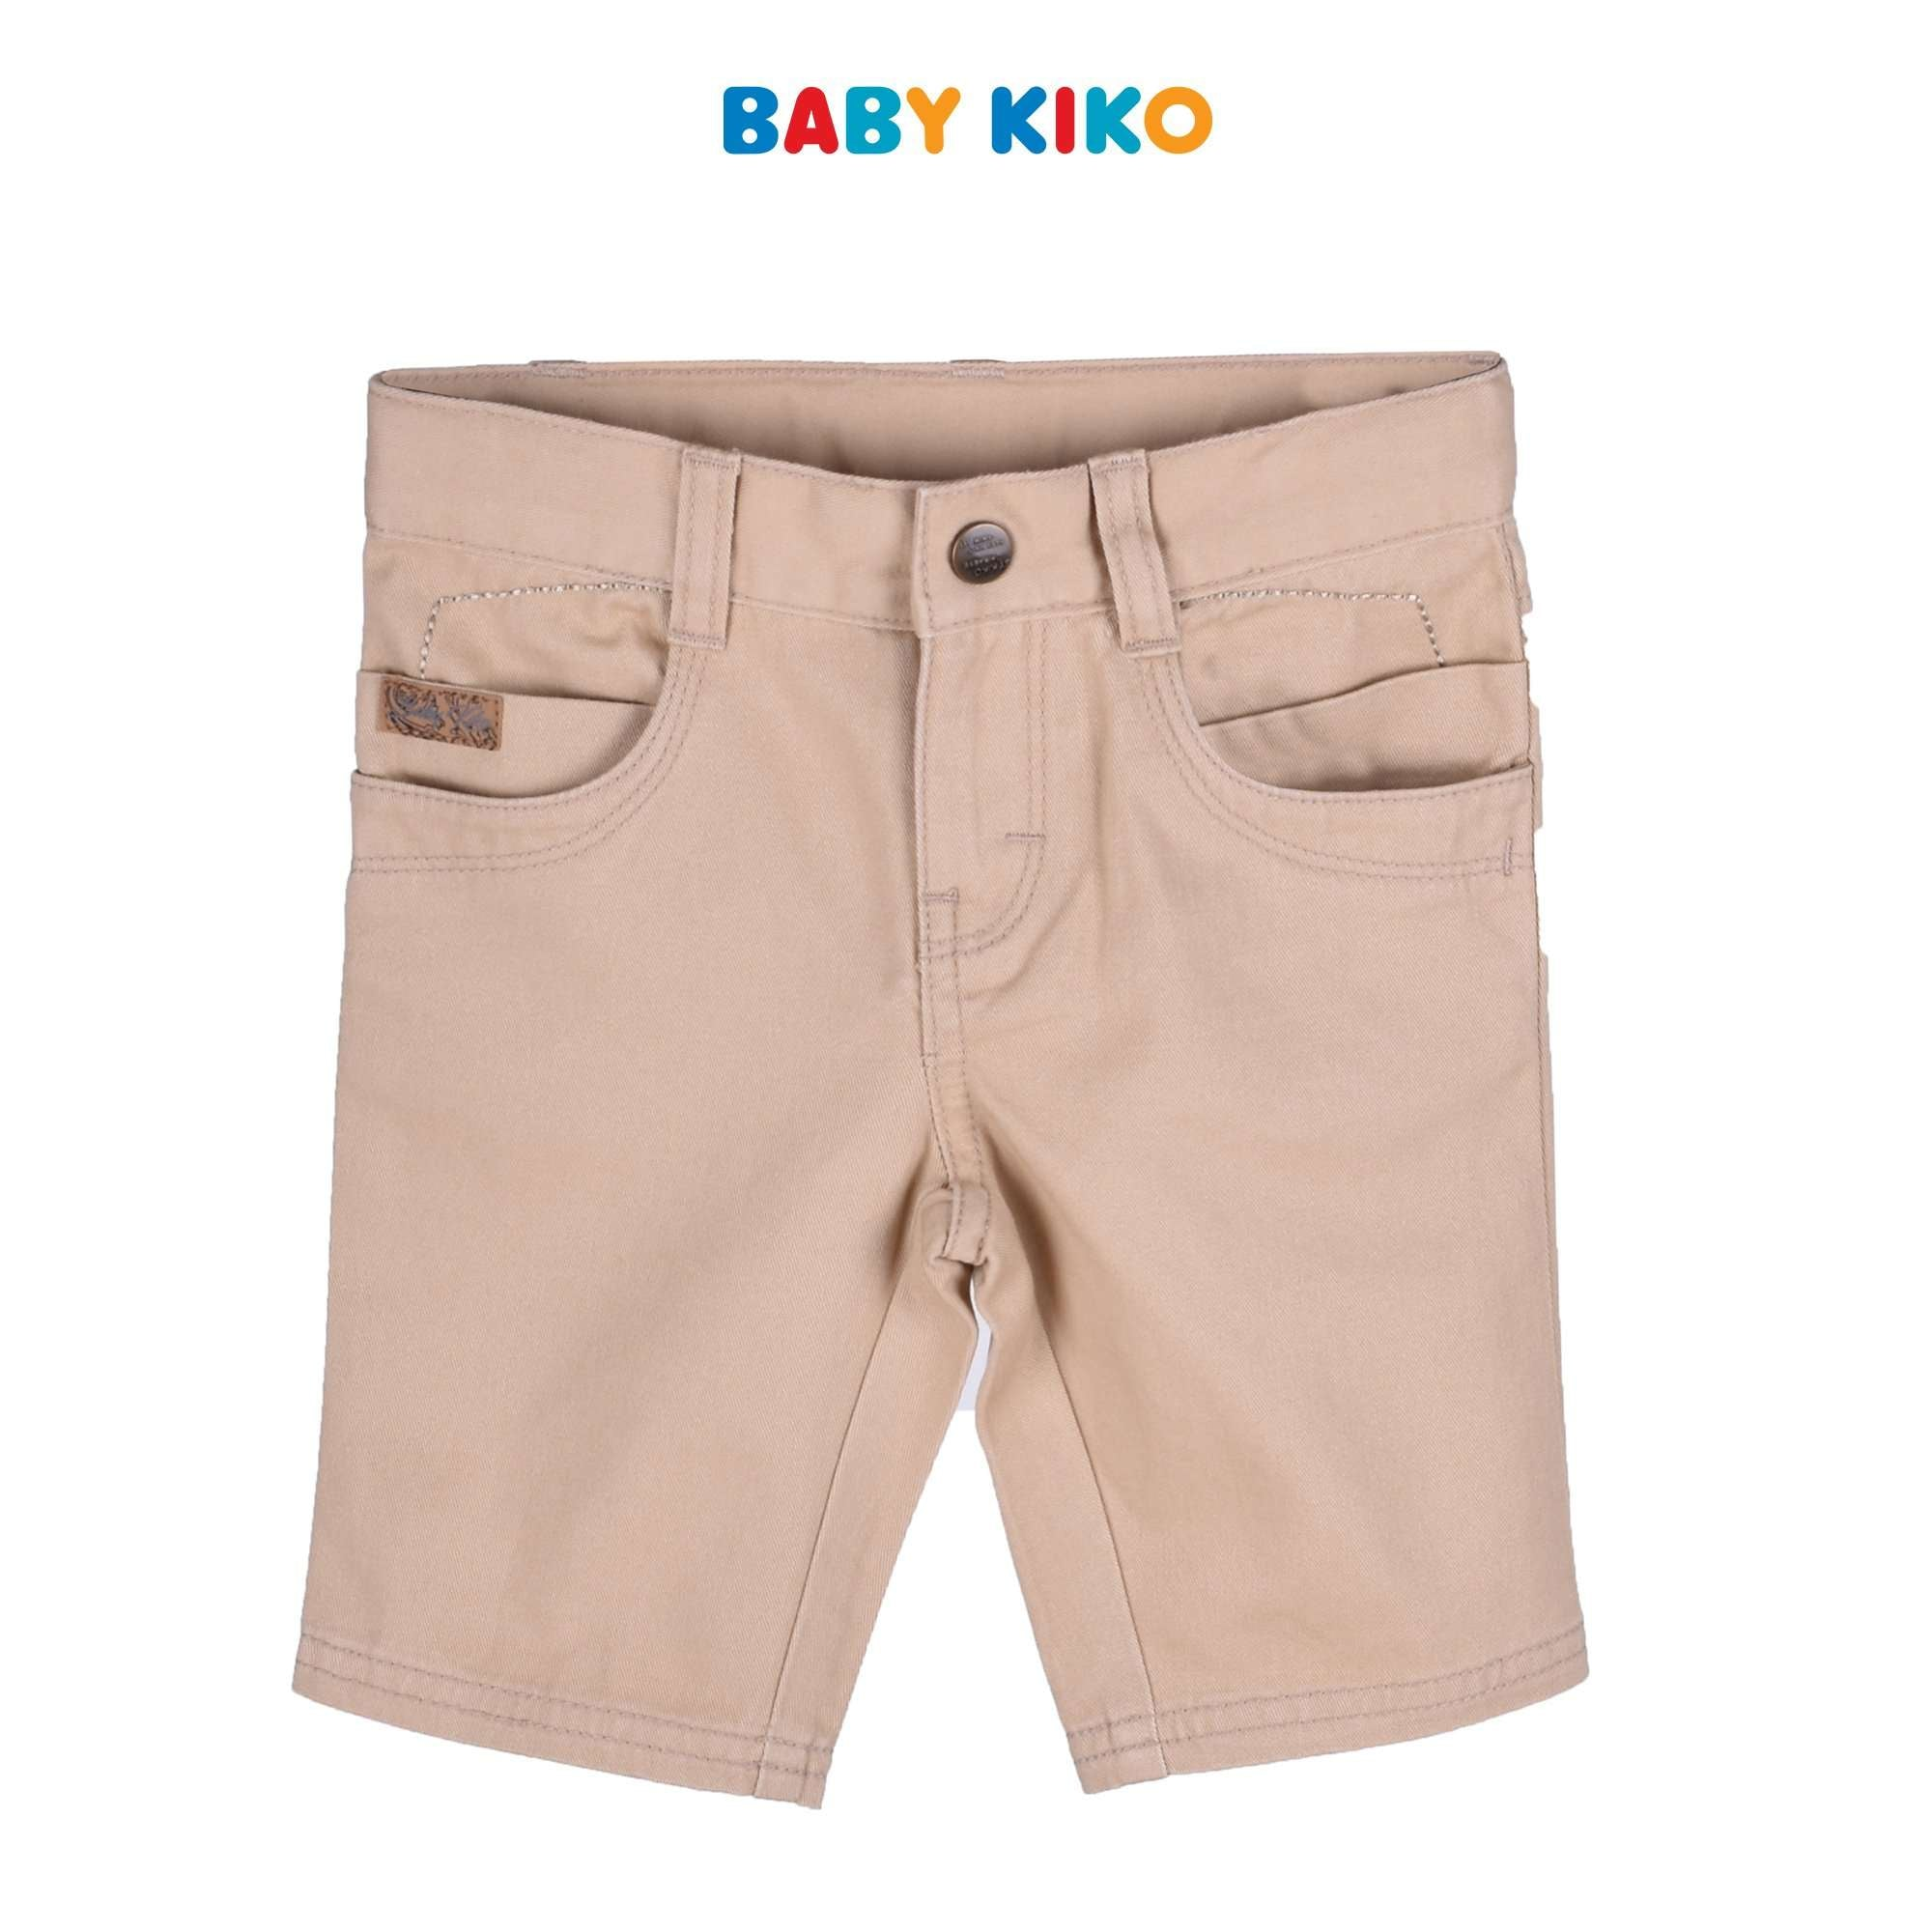 Baby KIKO Toddler Boy Bermuda 335115-242 : Buy Baby KIKO online at CMG.MY